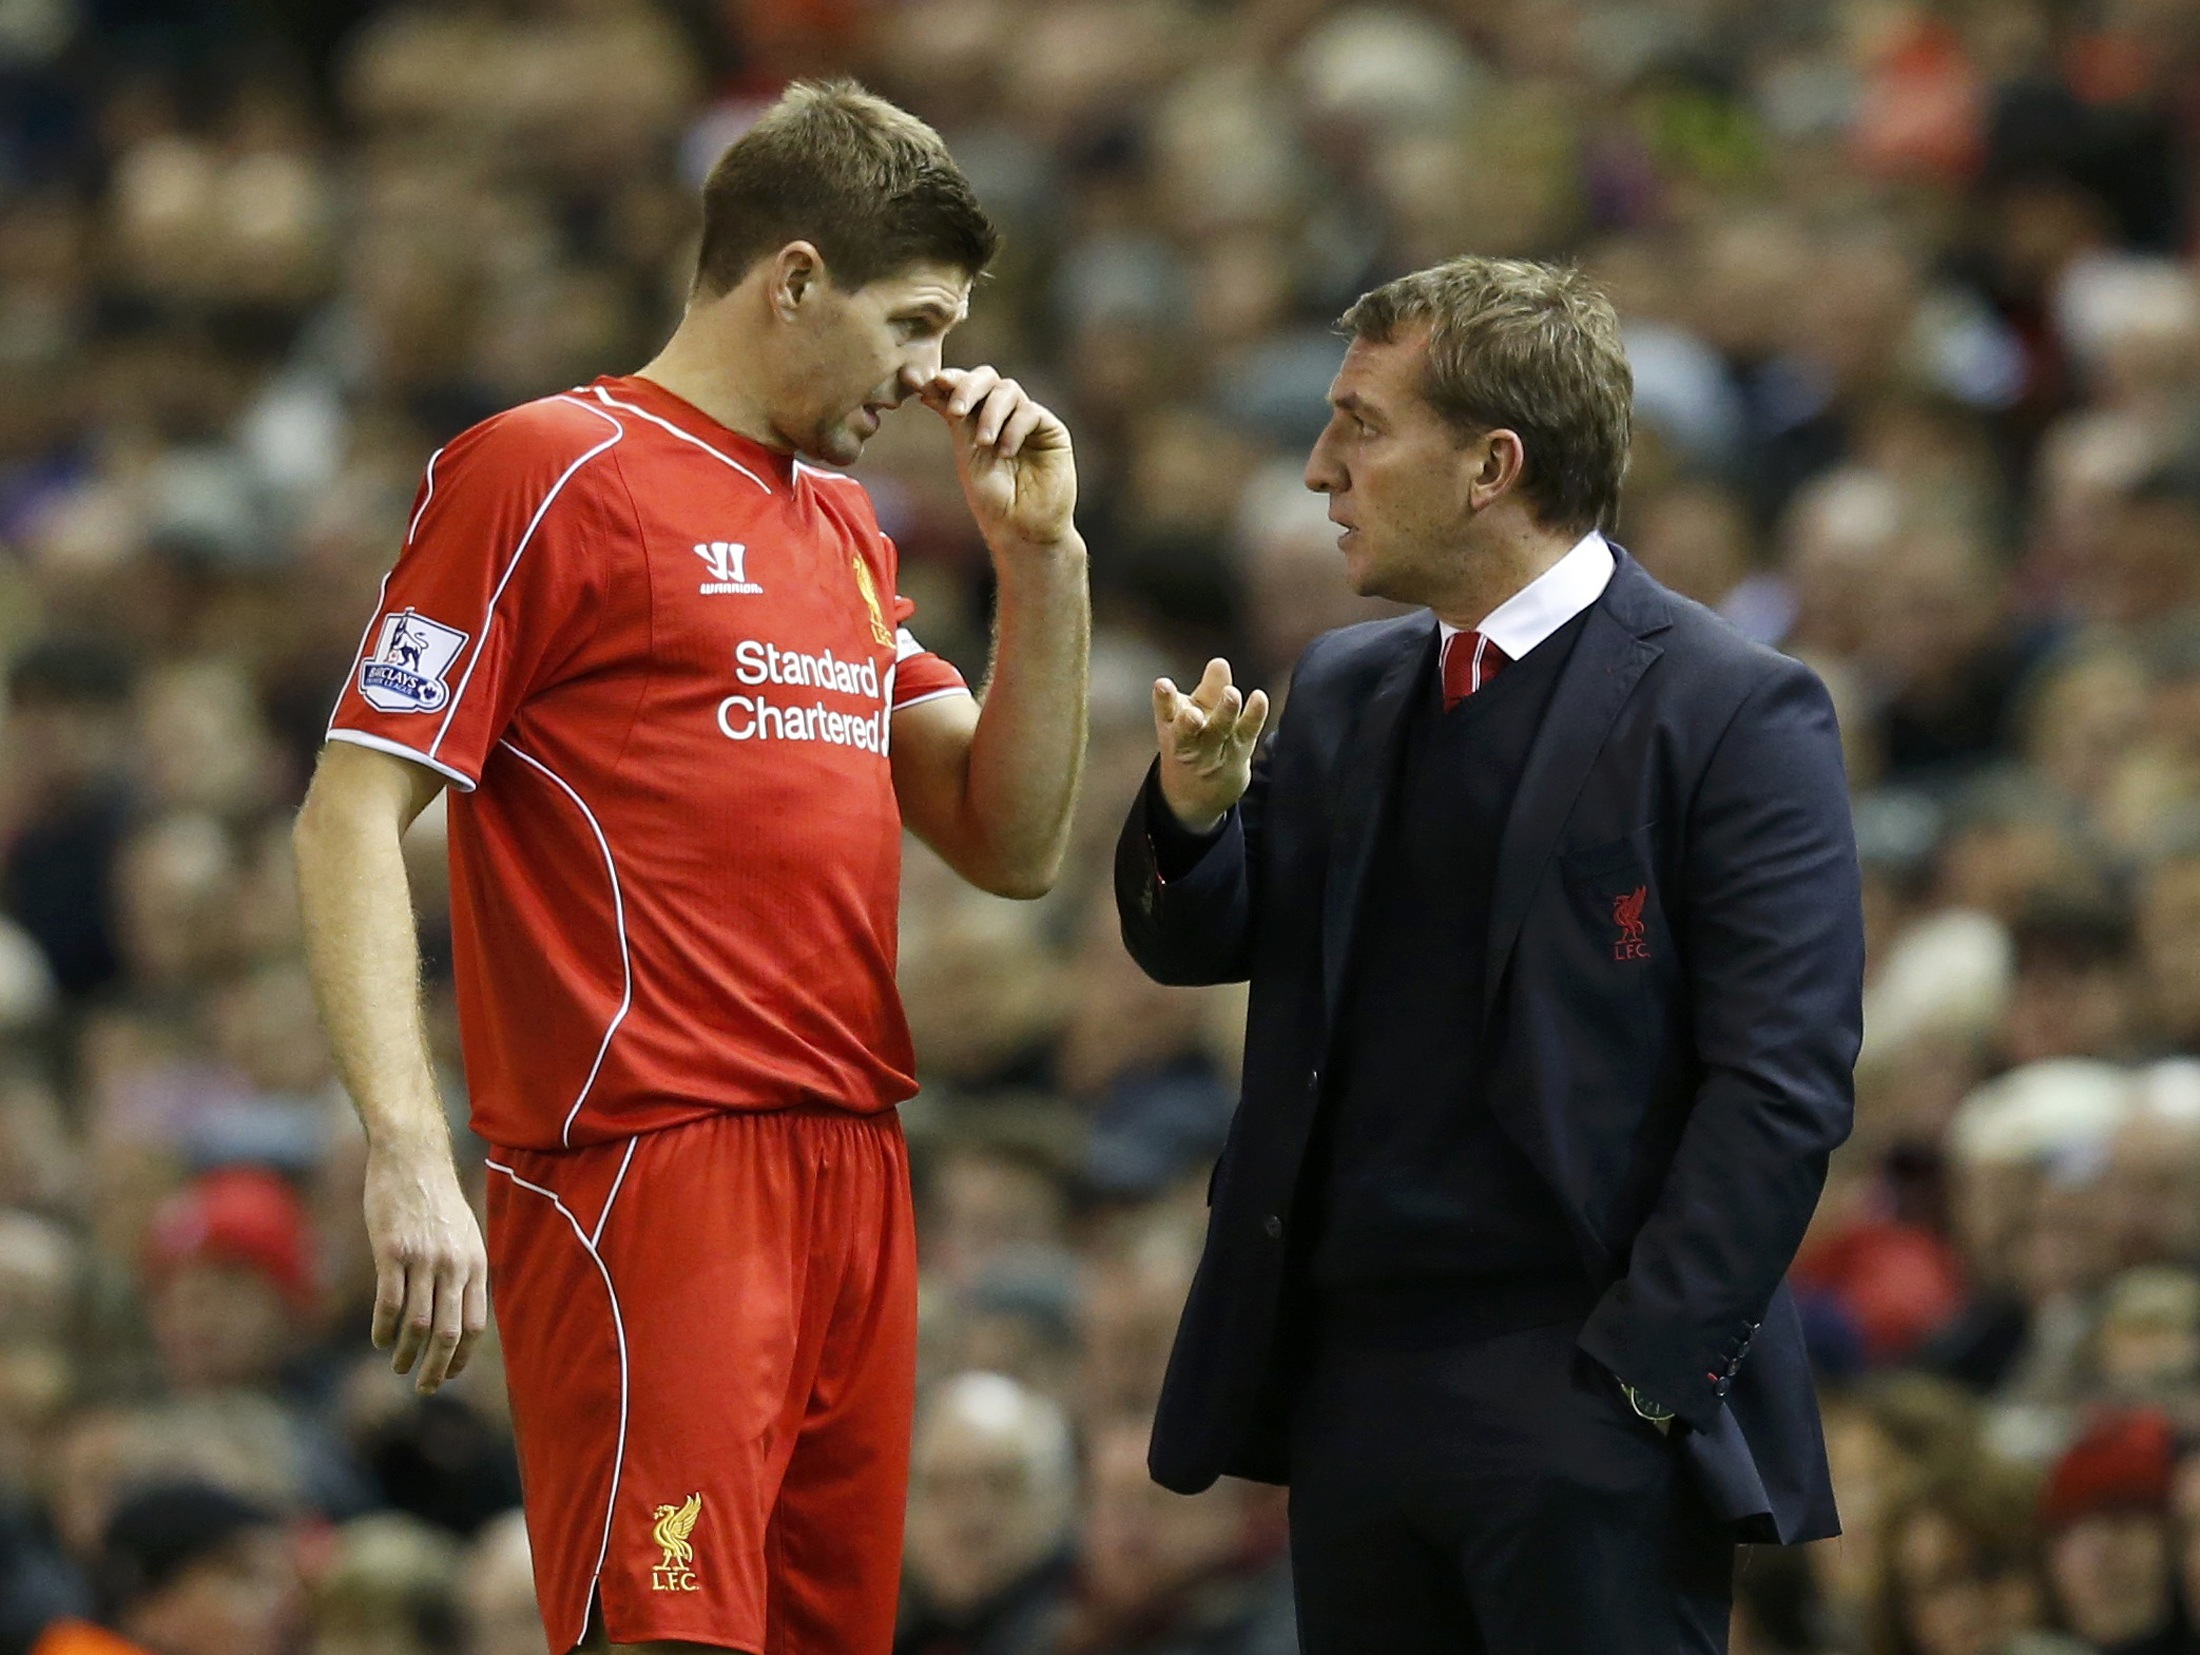 Liverpool manager Brendan Rodgers talks to Steven Gerrard during a break in their English Premier League soccer match against Arsenal at Anfield in Liverpool